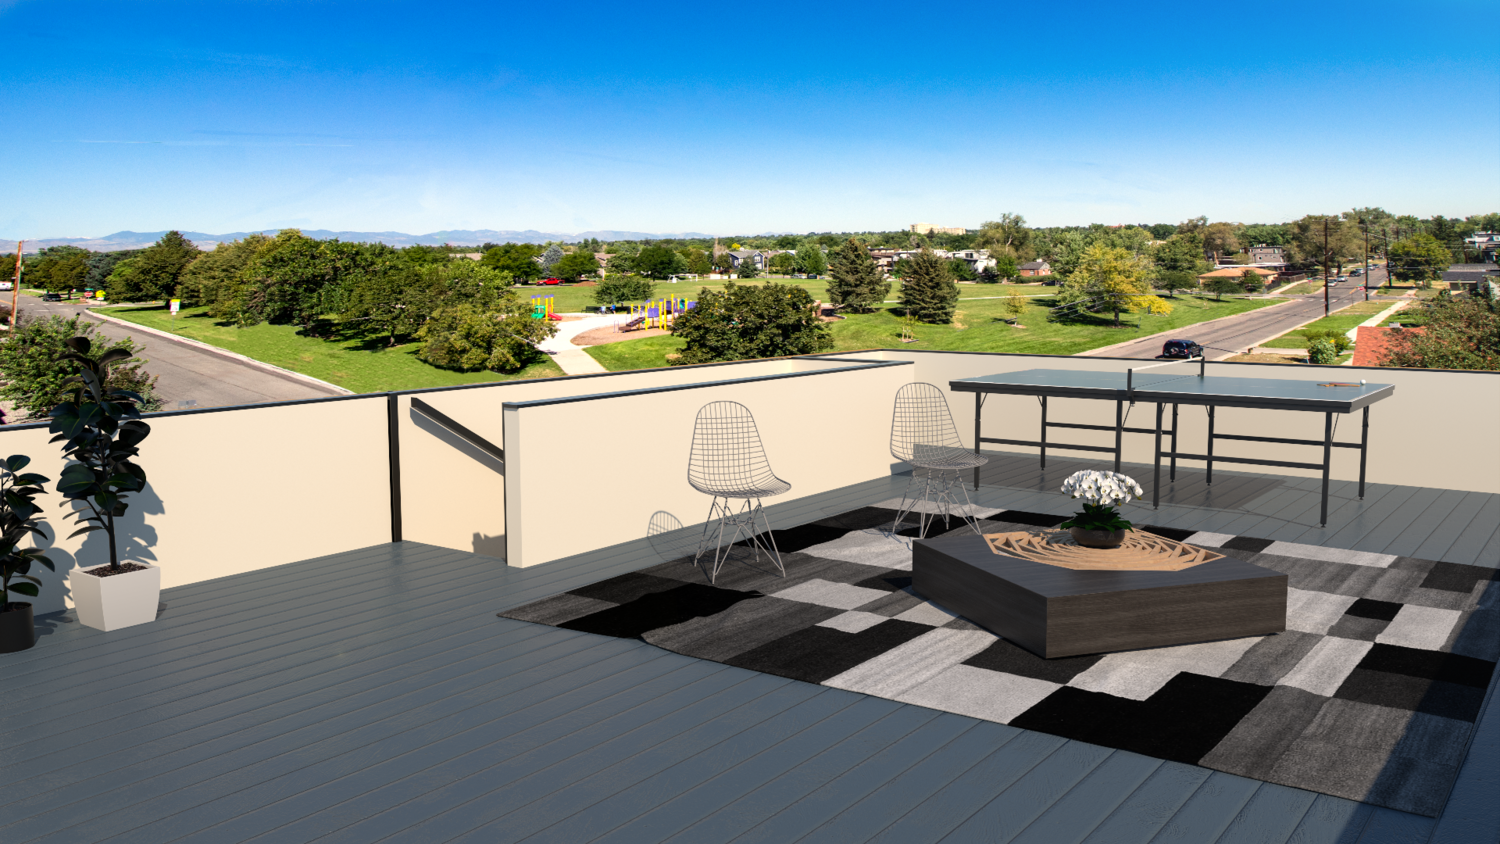 Other Features - - Large rooftop decks with composite decking and beautiful views- Hot tub compatible roof decks- Water and gas lines on roof- Engineered hardwood that flows throughout the entire 2nd floor and 1st flight of stairs- Smart home features (Ring video doorbell, touchscreen keyless lock, Nest thermostat, smart home control garage door, Ring security system.)- Open metal railings- LED lighting- Ceiling fan in the master bedroom